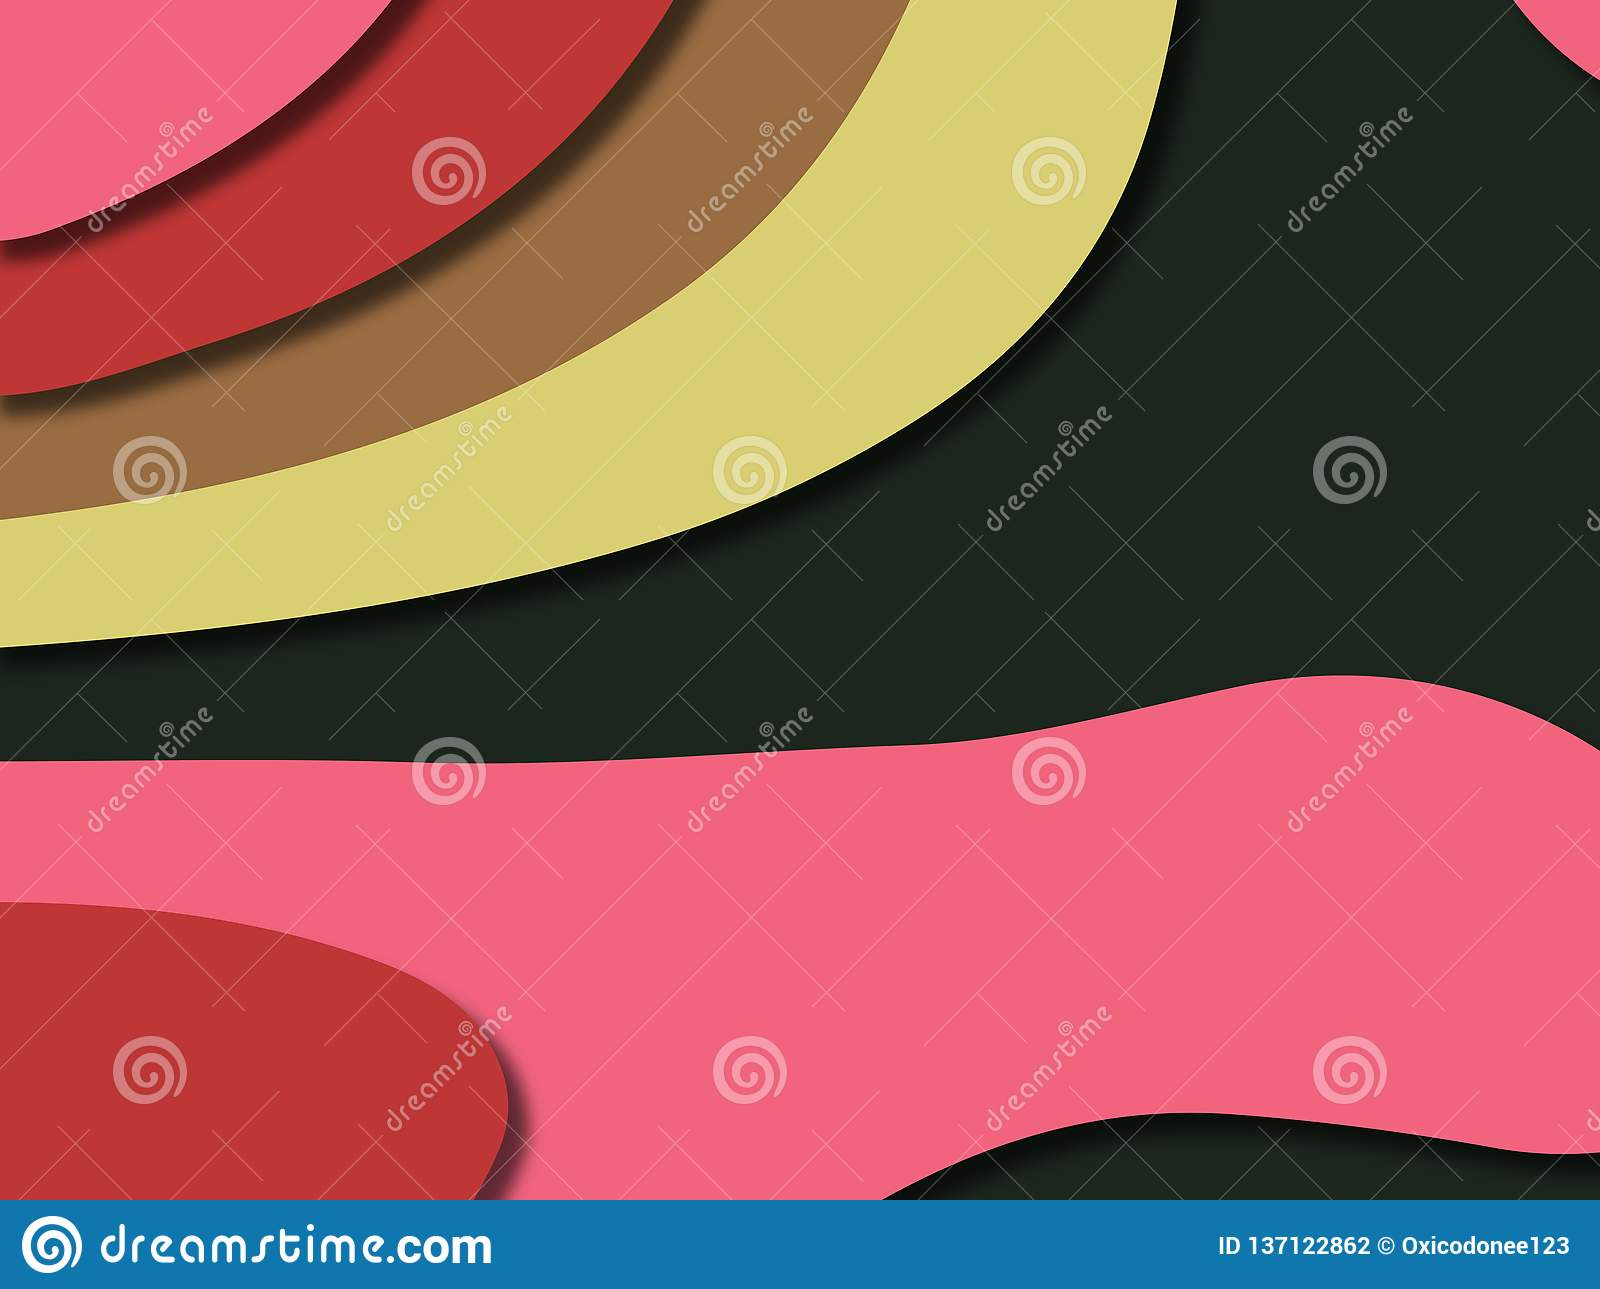 3D abstract background with paper cut shapes.Abstract paper carve template background,for book cover.Paper cut background. stock photography